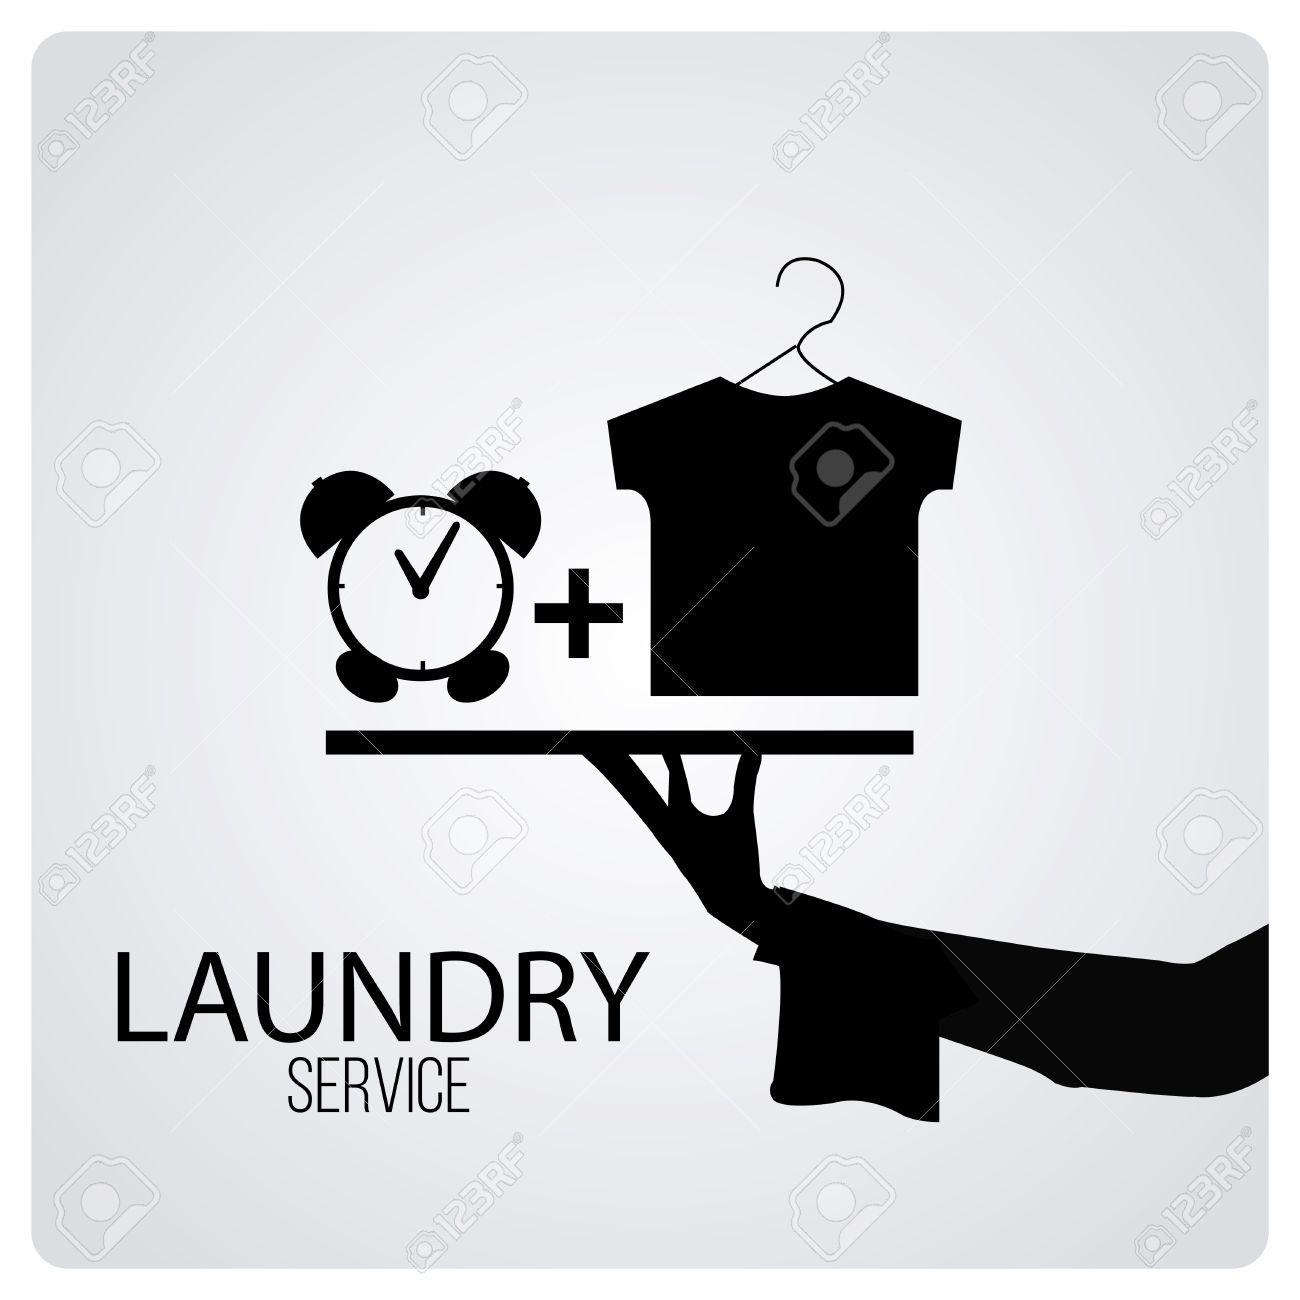 Laundry Service Over Degrade Color Background Royalty Free.